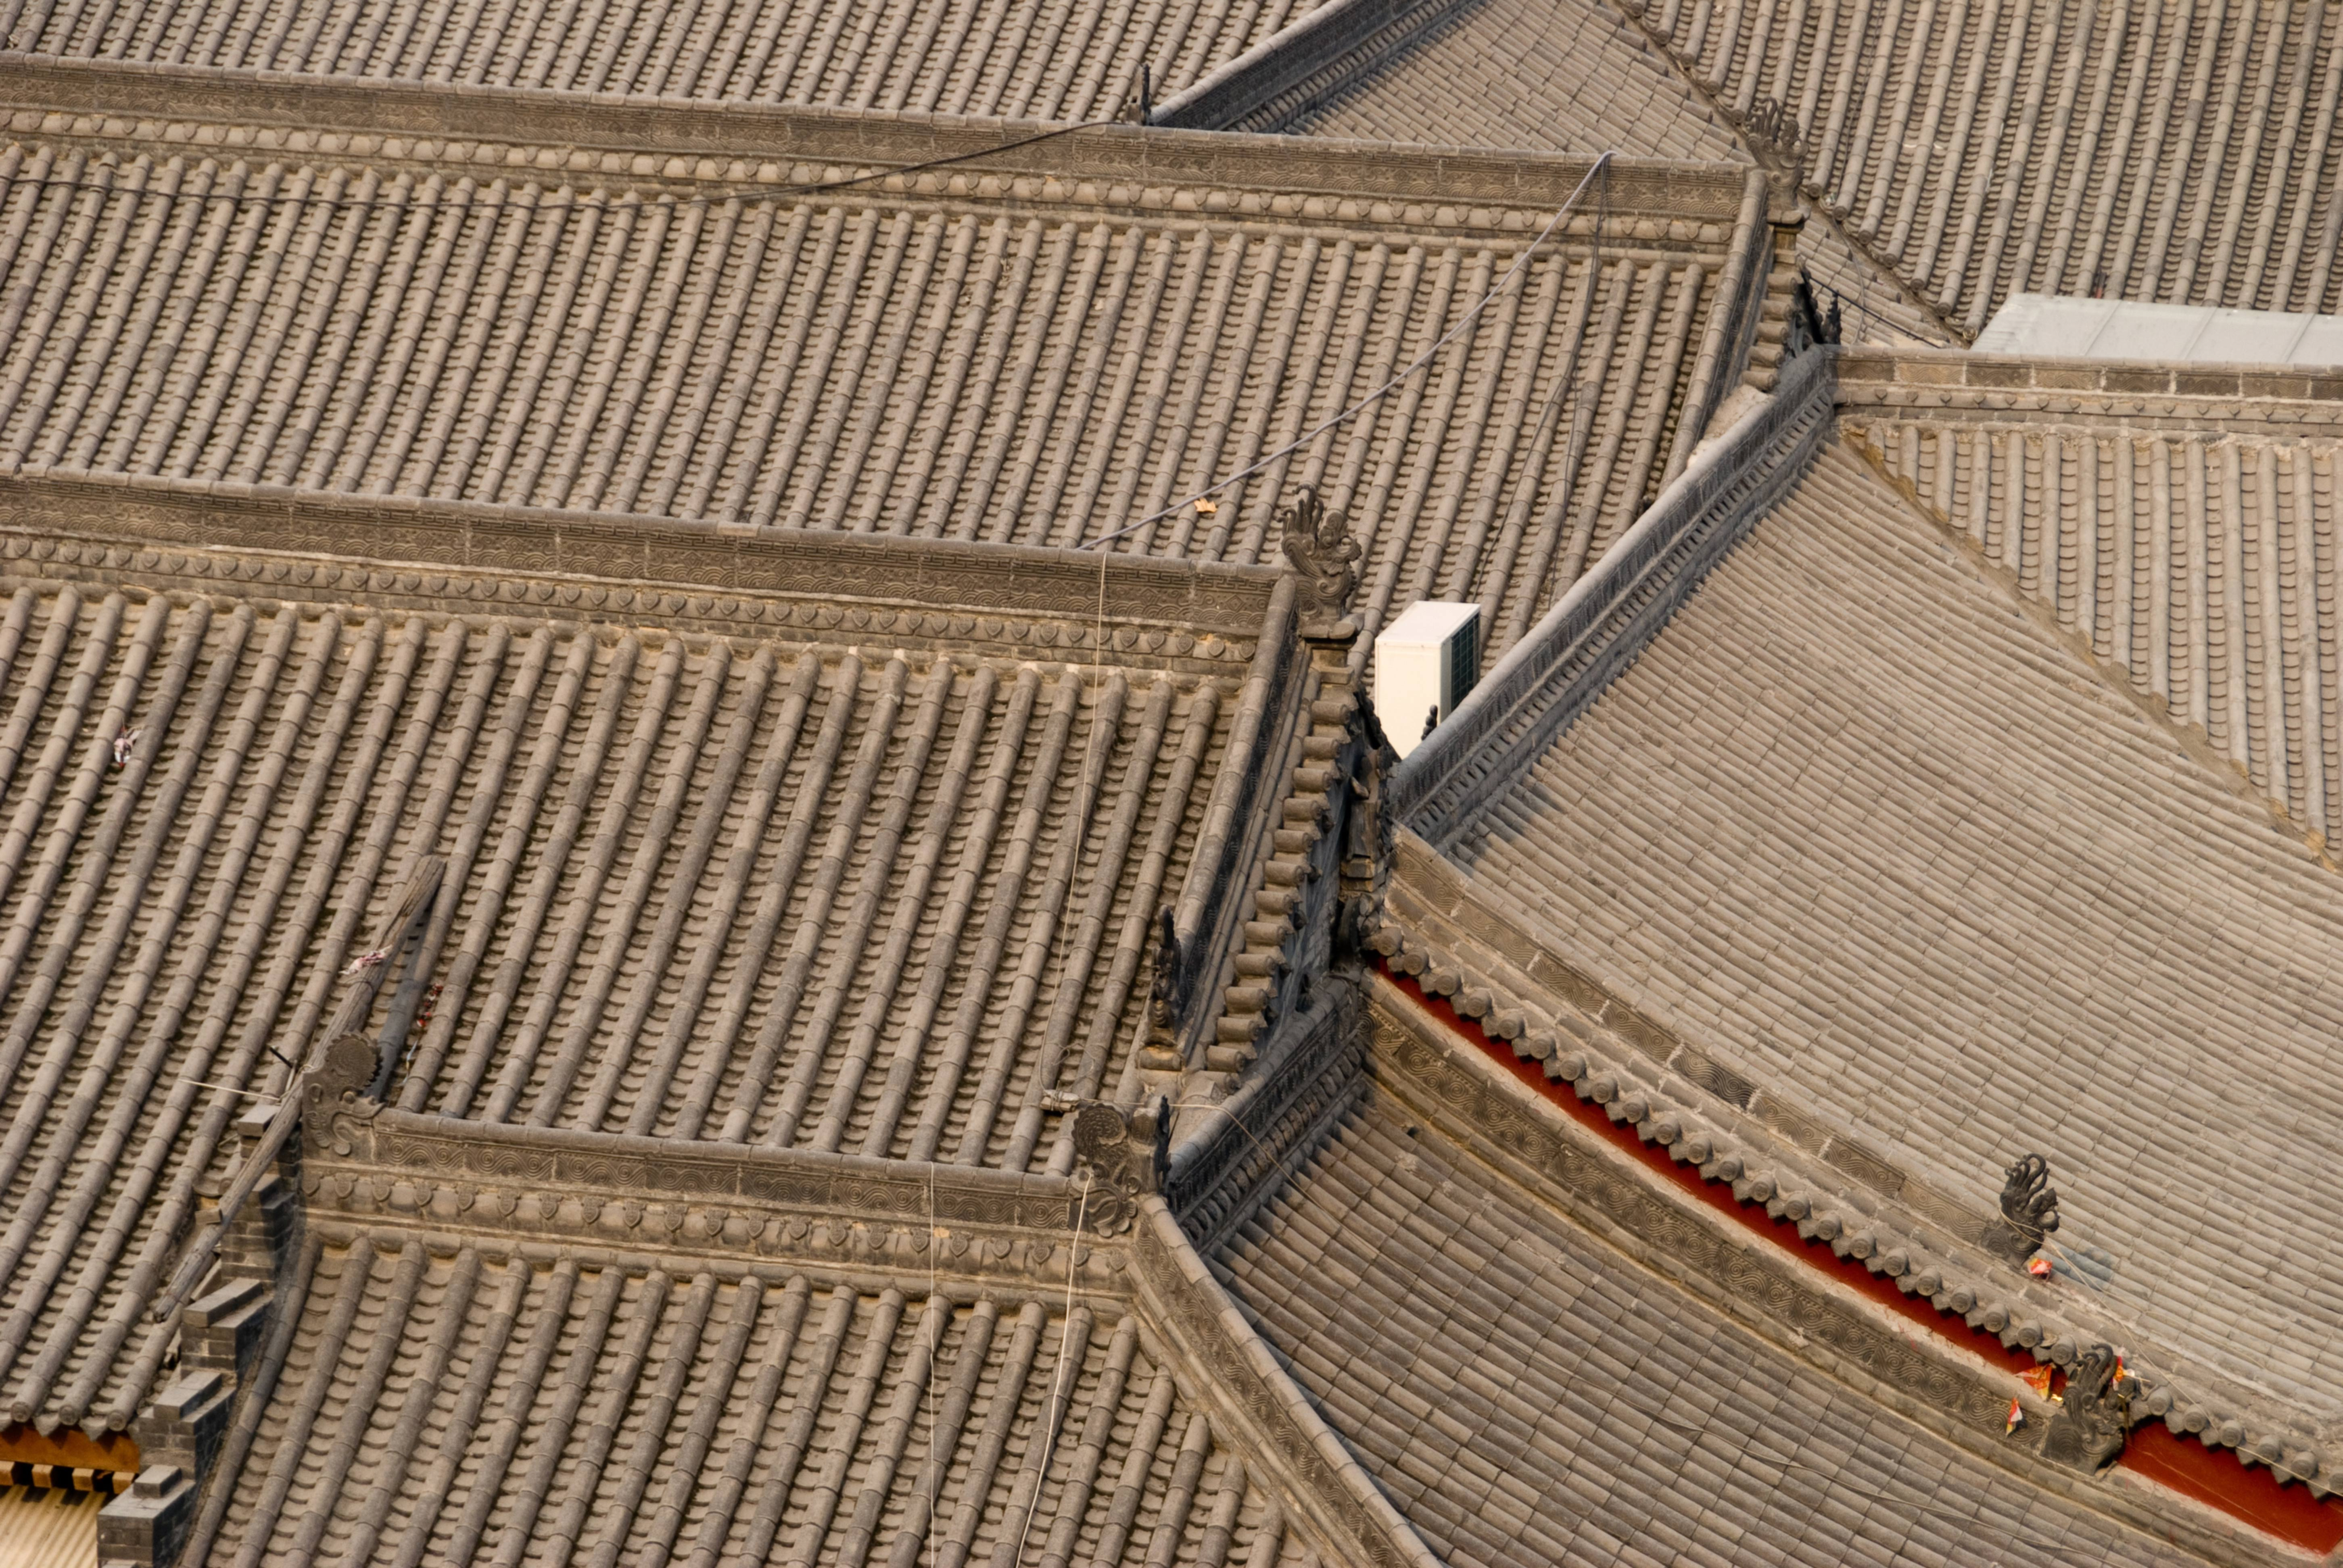 Chinese Temple Rooftops